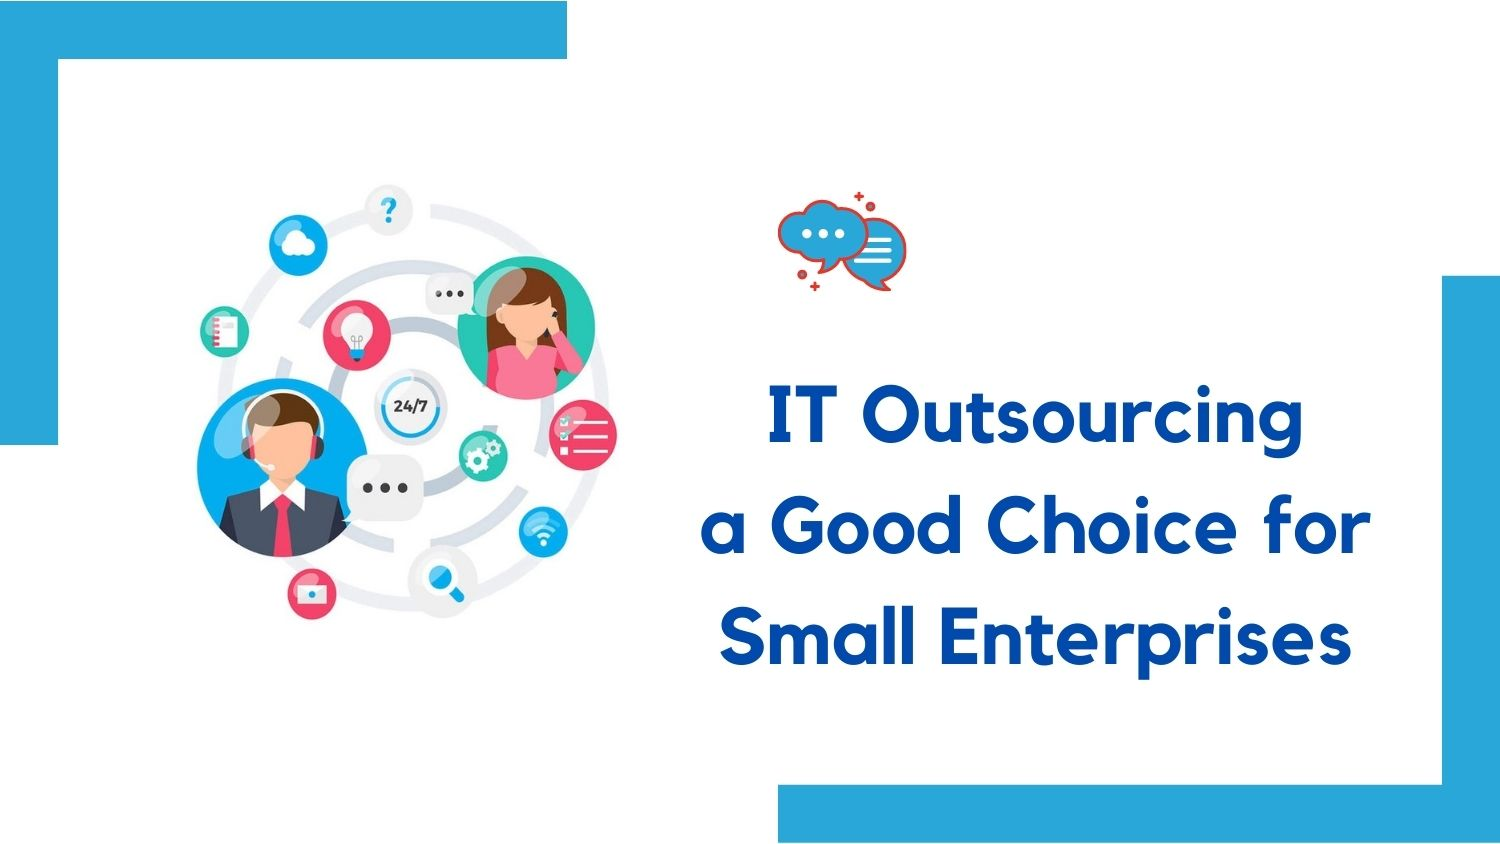 IT Outsourcing is a good choice for Small Enterprises